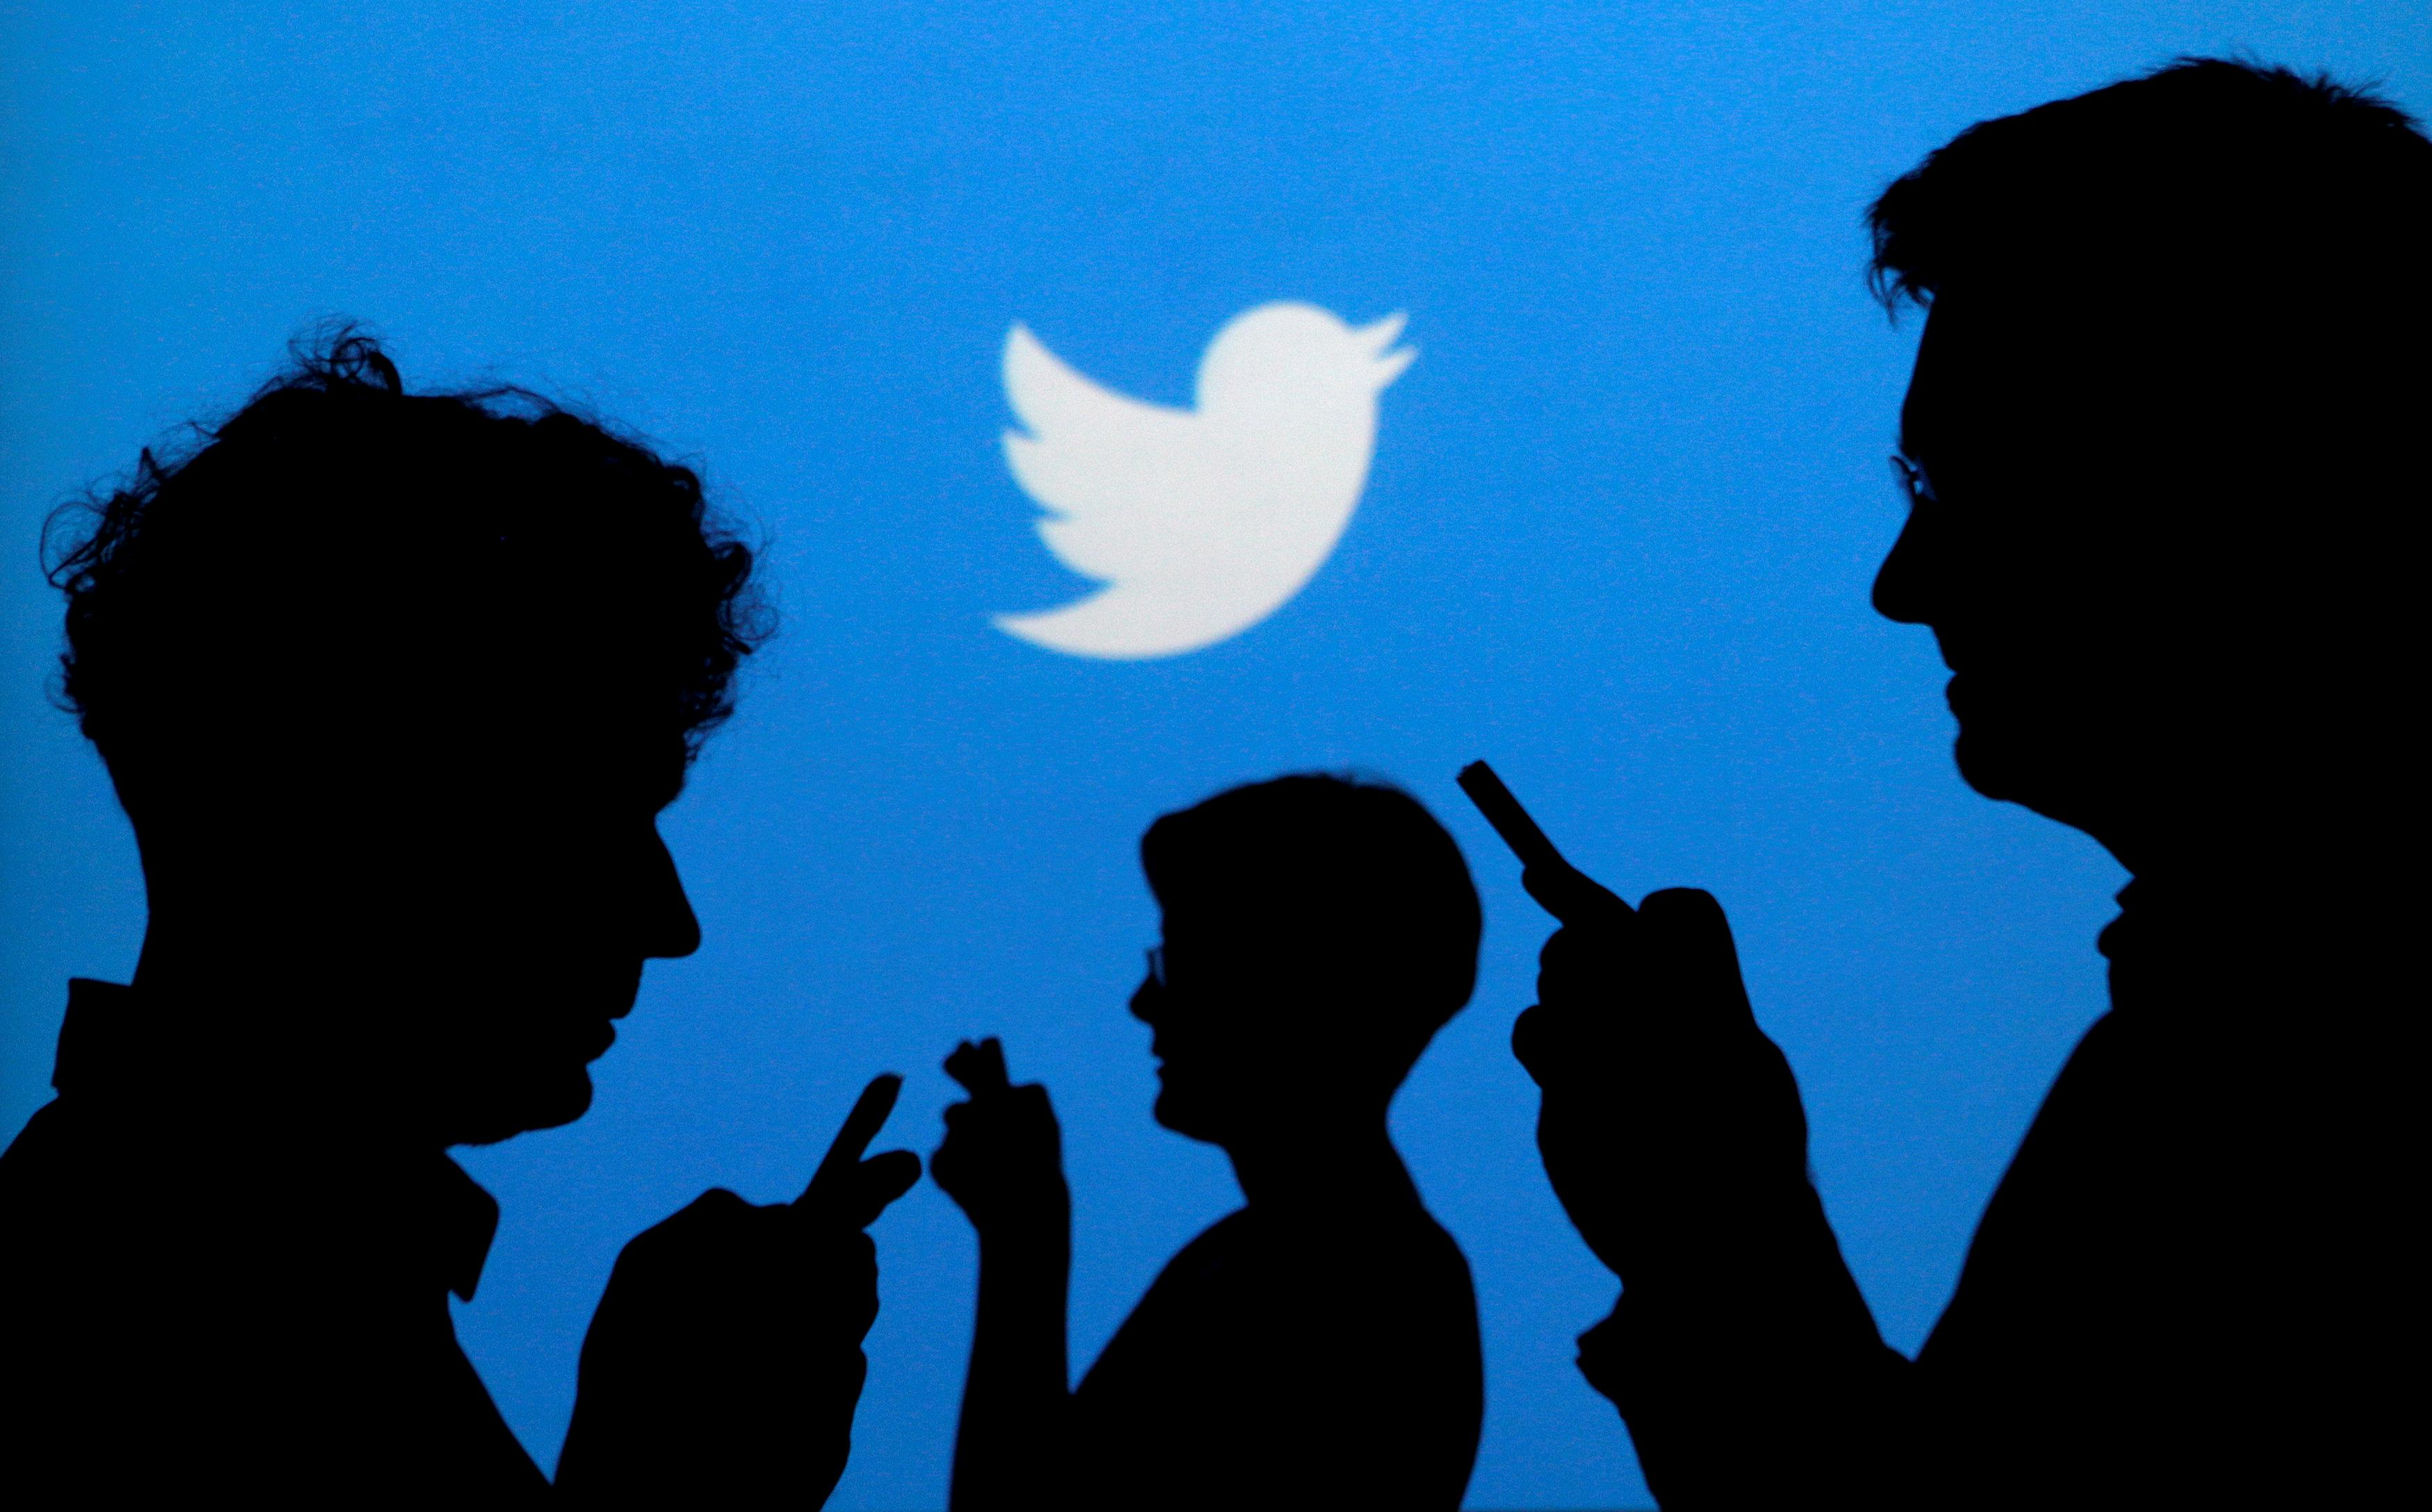 twitter to ban 5g conspiracy theories